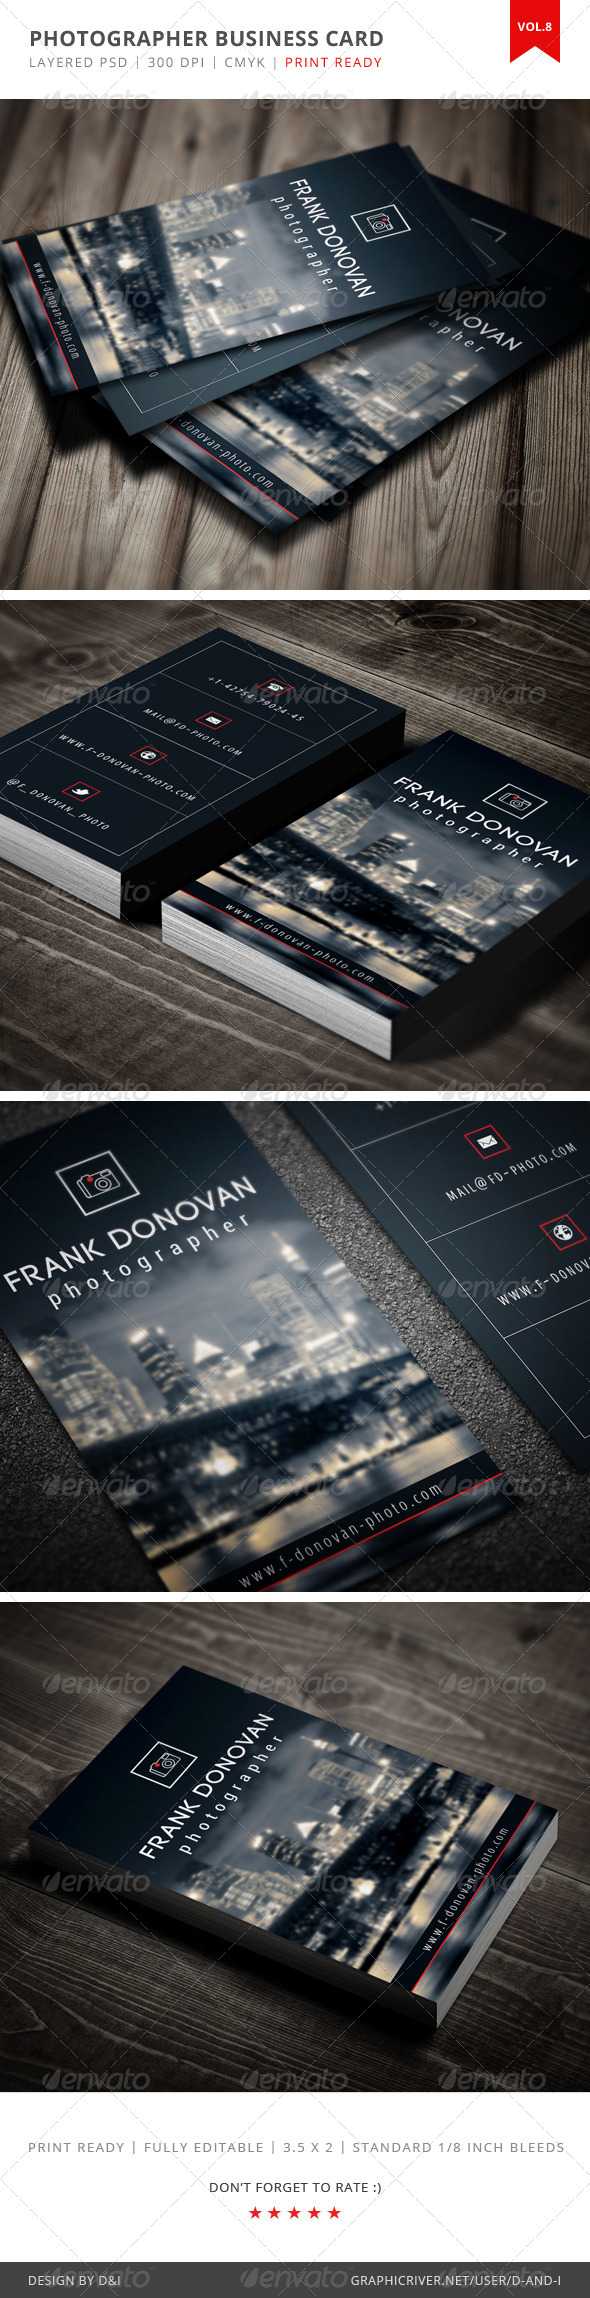 GraphicRiver Photographer Business Card Vol.8 4076955